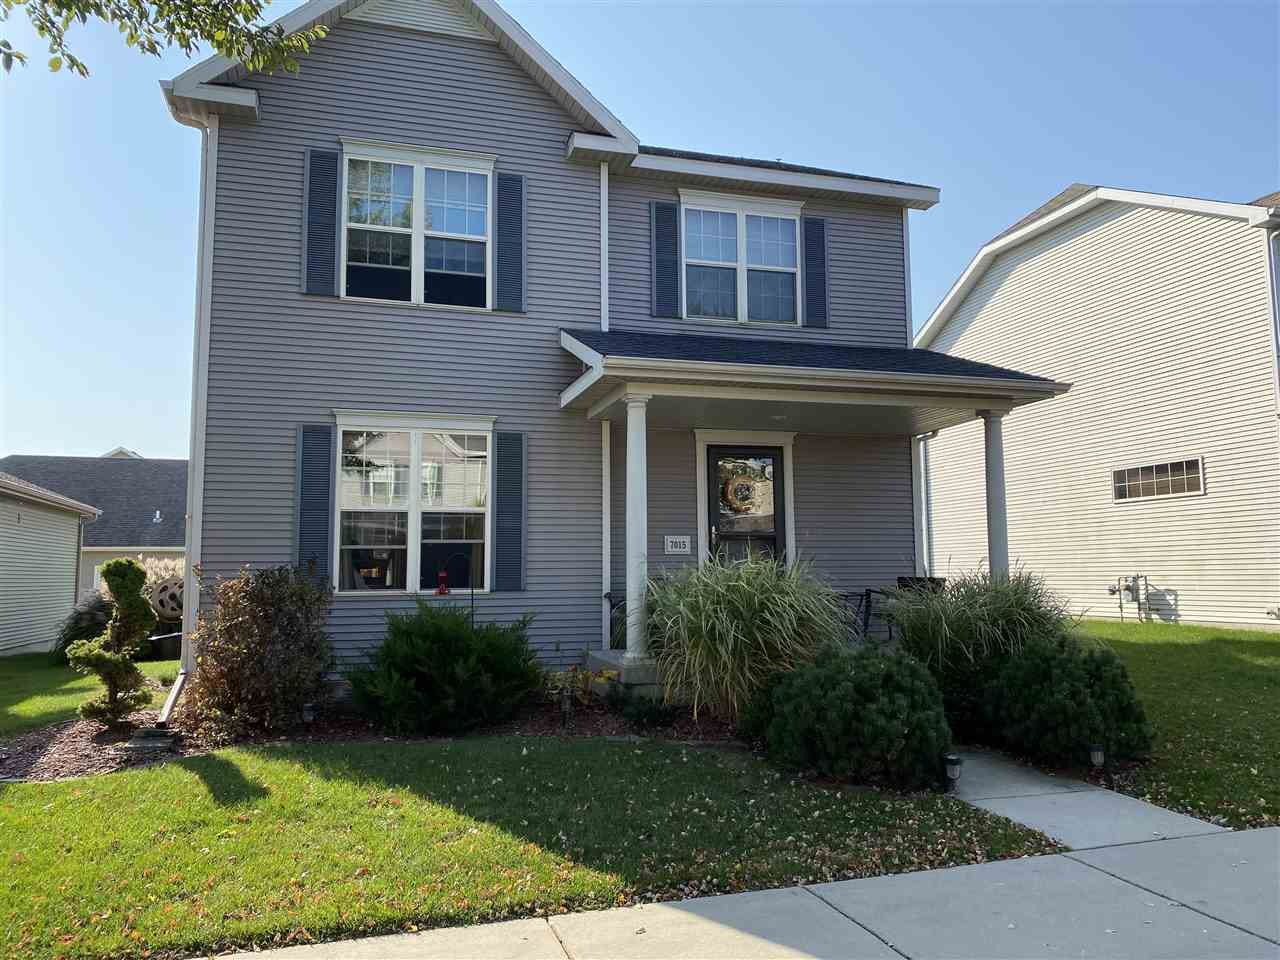 7015 Reston Heights Dr, Madison, WI 53718 - #: 1896194